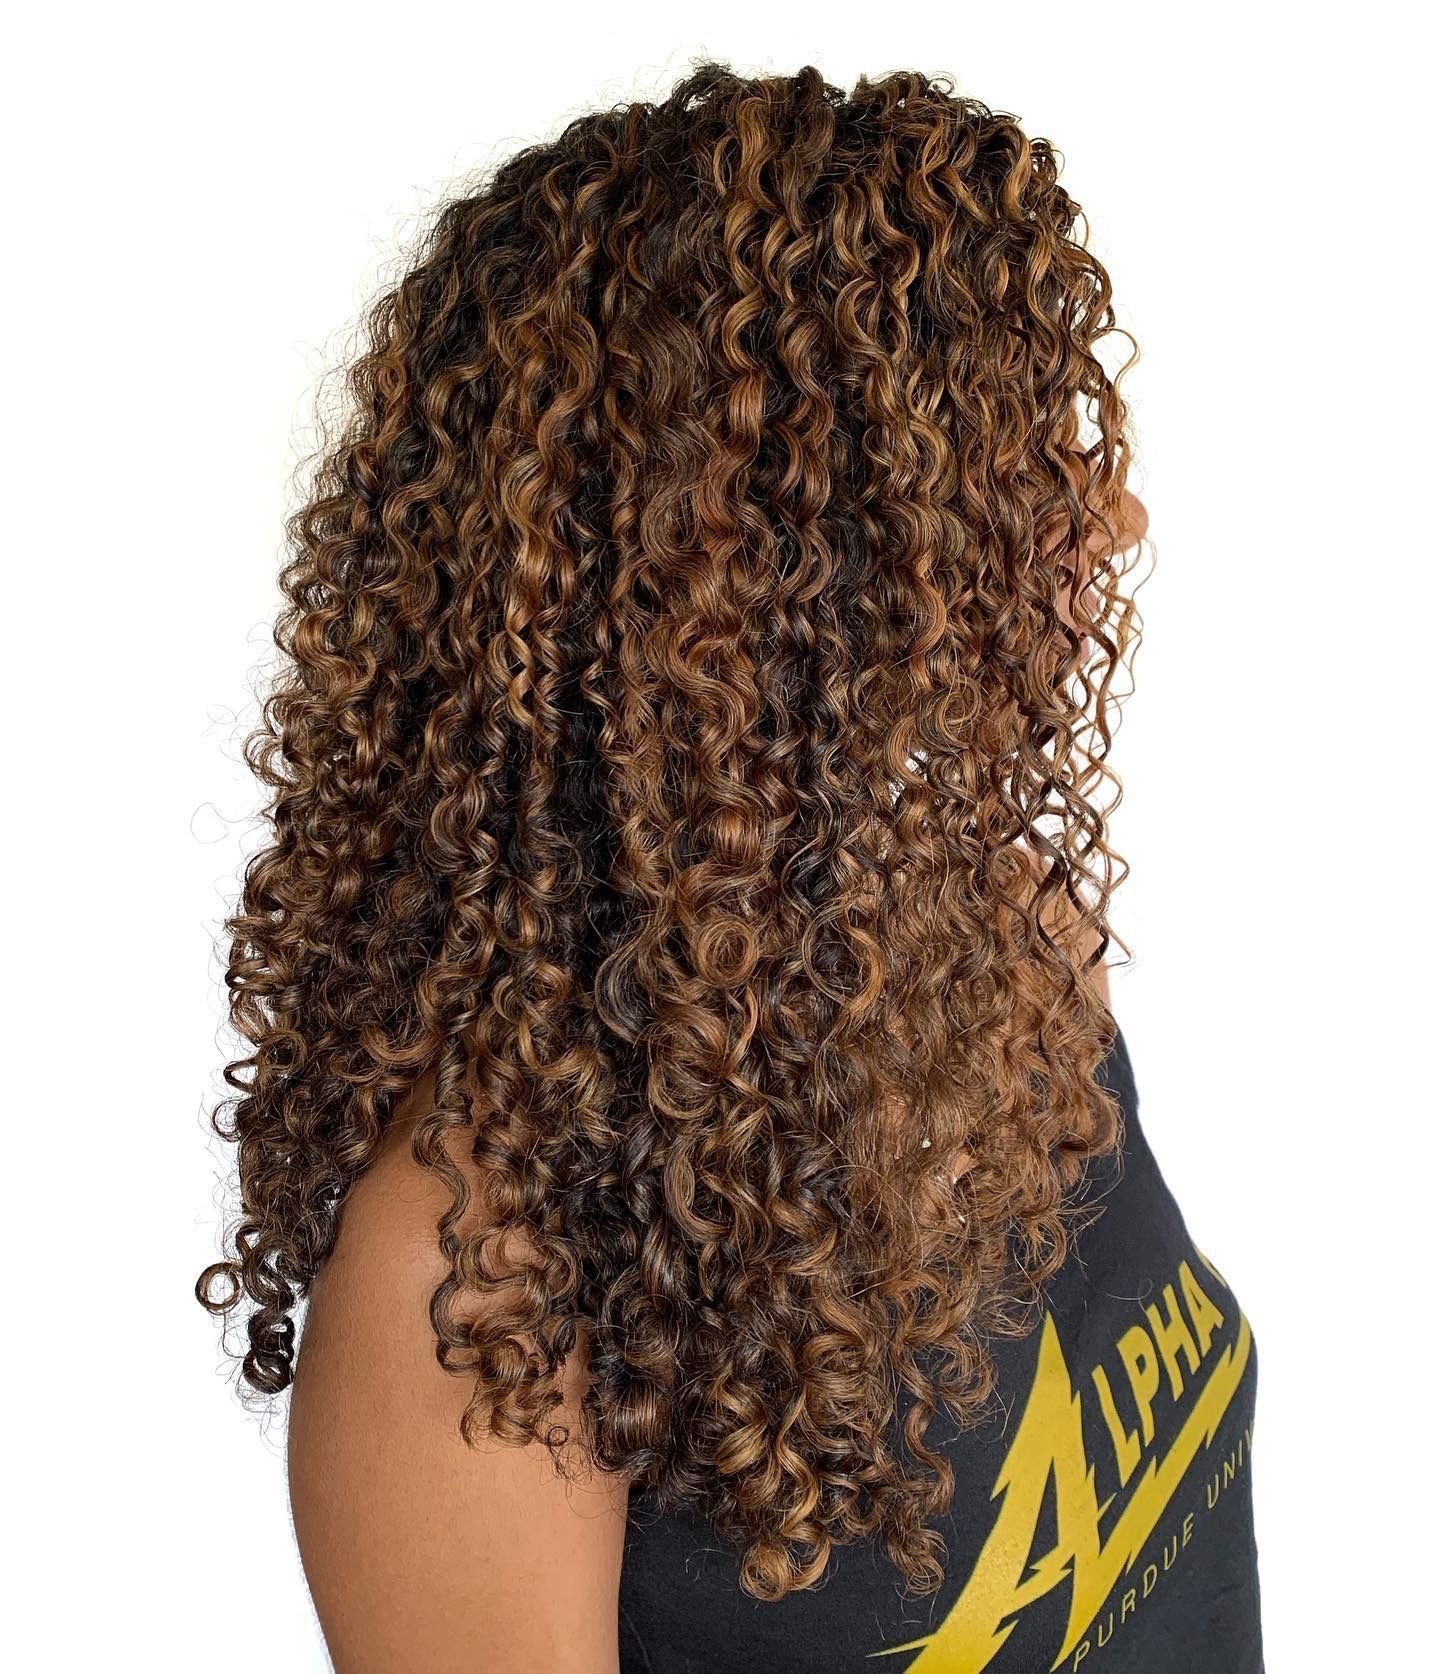 Pintura Highlights Dyed Curly Hair Dyed Natural Hair Colored Curly Hair